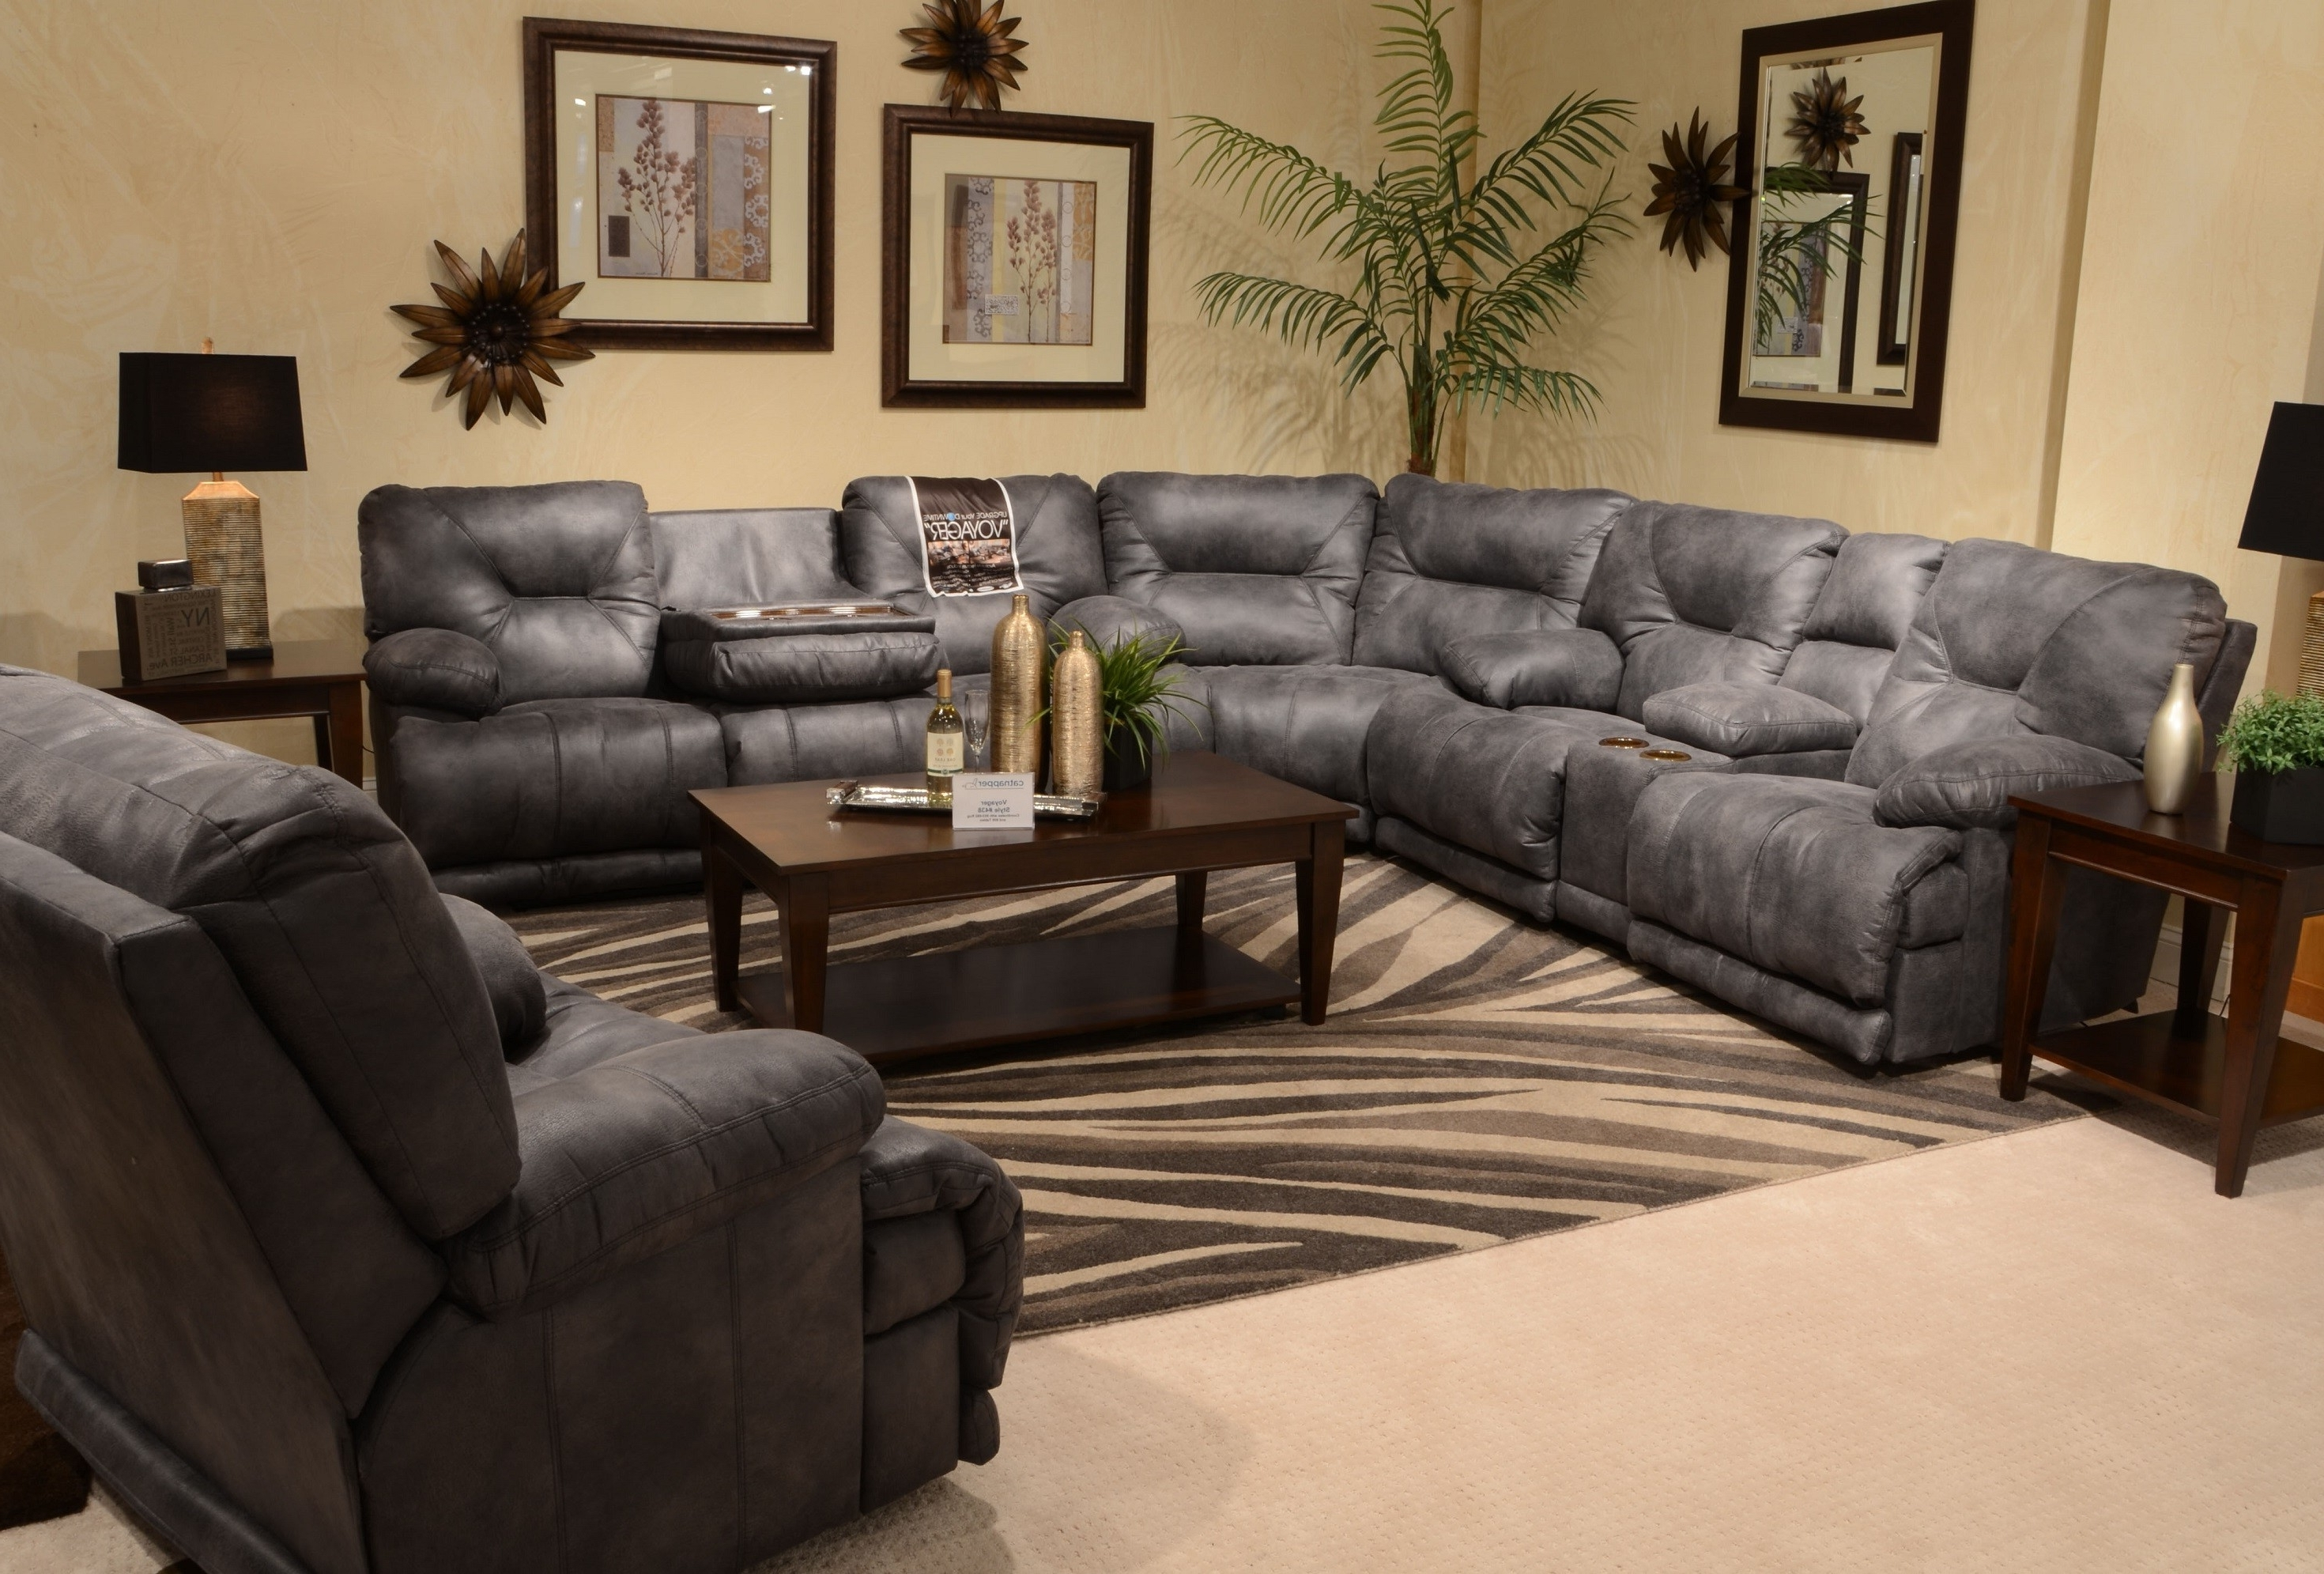 Grey Velvet Sectional Sofa – Cleanupflorida For Popular Ottawa Sectional Sofas (Gallery 9 of 15)